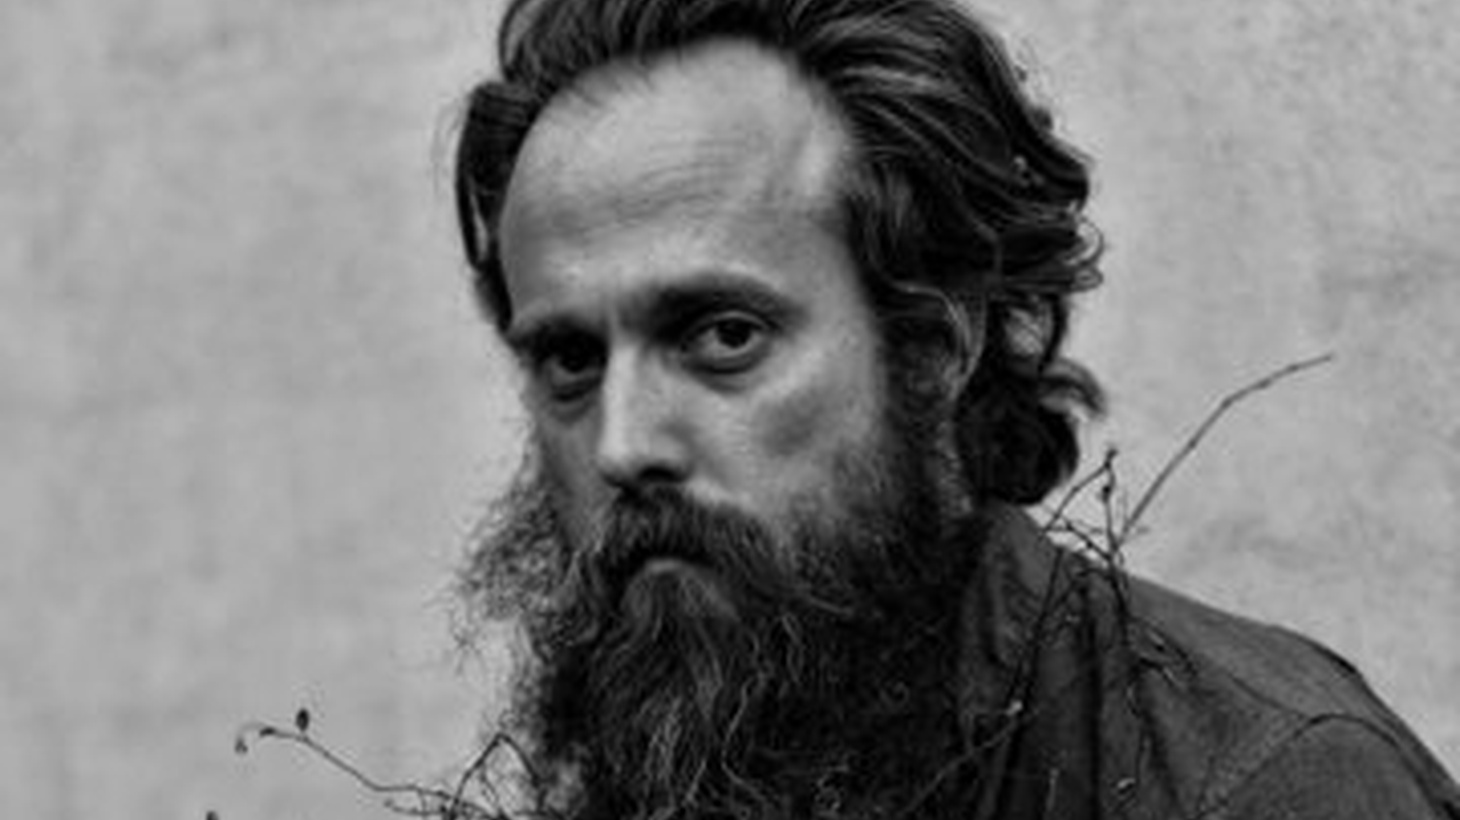 Iron & Wine fans, rejoice, as we have a follow-up to their 2017 Grammy-nominated album, Beast Epic. Weed Garden is a 6-song EP that features songs from the writing phase for his last album, but which weren't quite completed.